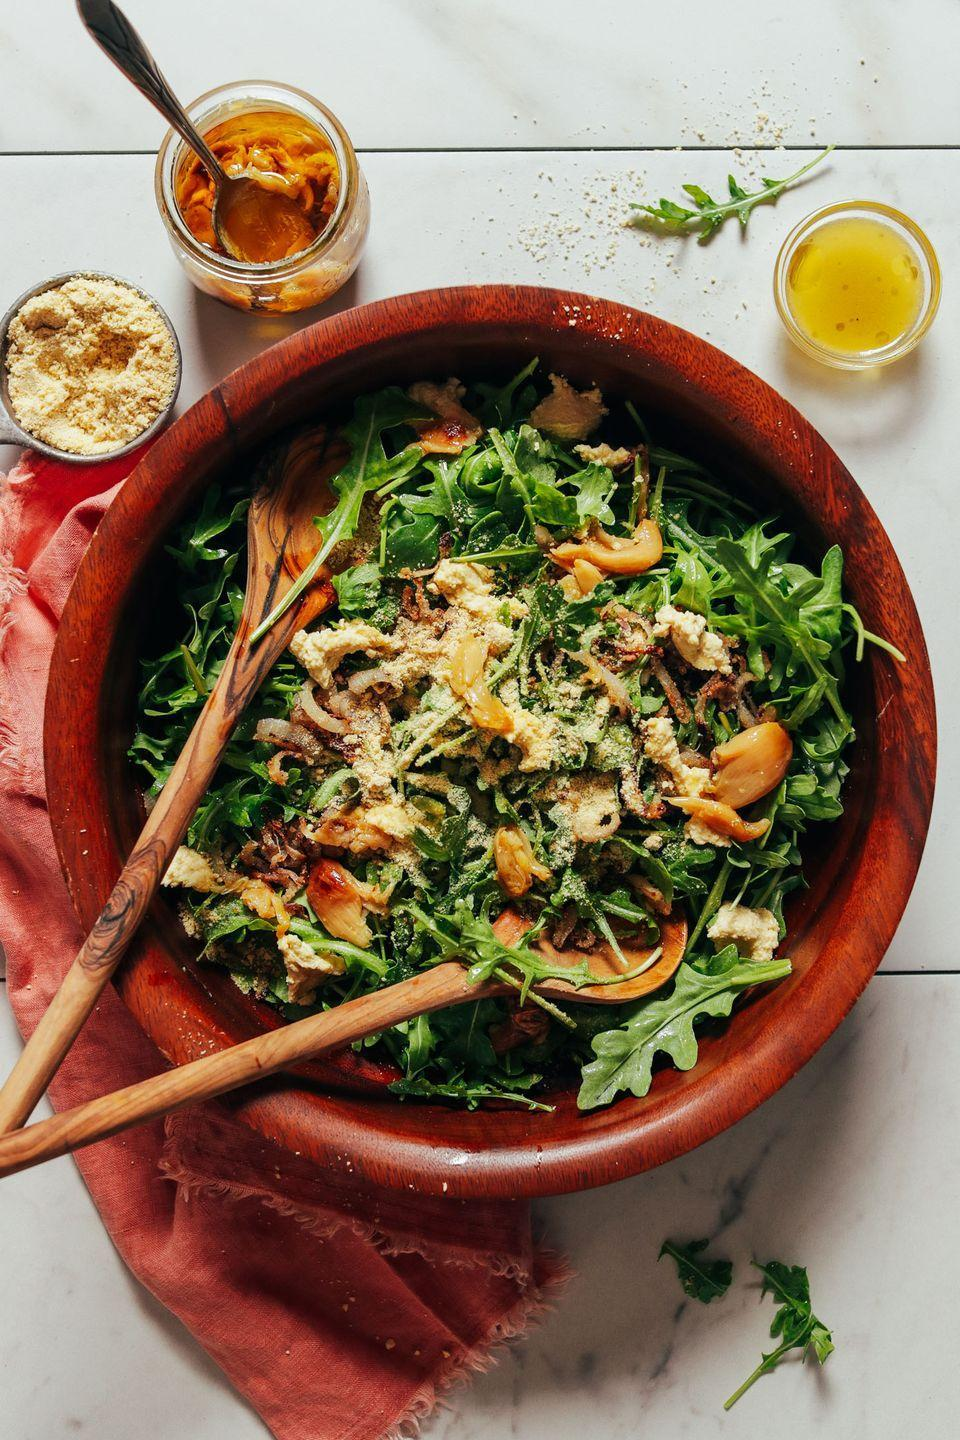 """<p>The crispy shallots in this salad remind us of the crunchy onions you often find on green bean casseroles. They're savory, salty, and sure to become a new favorite.</p><p><strong>Get the recipe at <a href=""""https://minimalistbaker.com/lemony-arugula-salad-with-crispy-shallot/"""" rel=""""nofollow noopener"""" target=""""_blank"""" data-ylk=""""slk:Minimalist Baker"""" class=""""link rapid-noclick-resp"""">Minimalist Baker</a>.</strong></p>"""